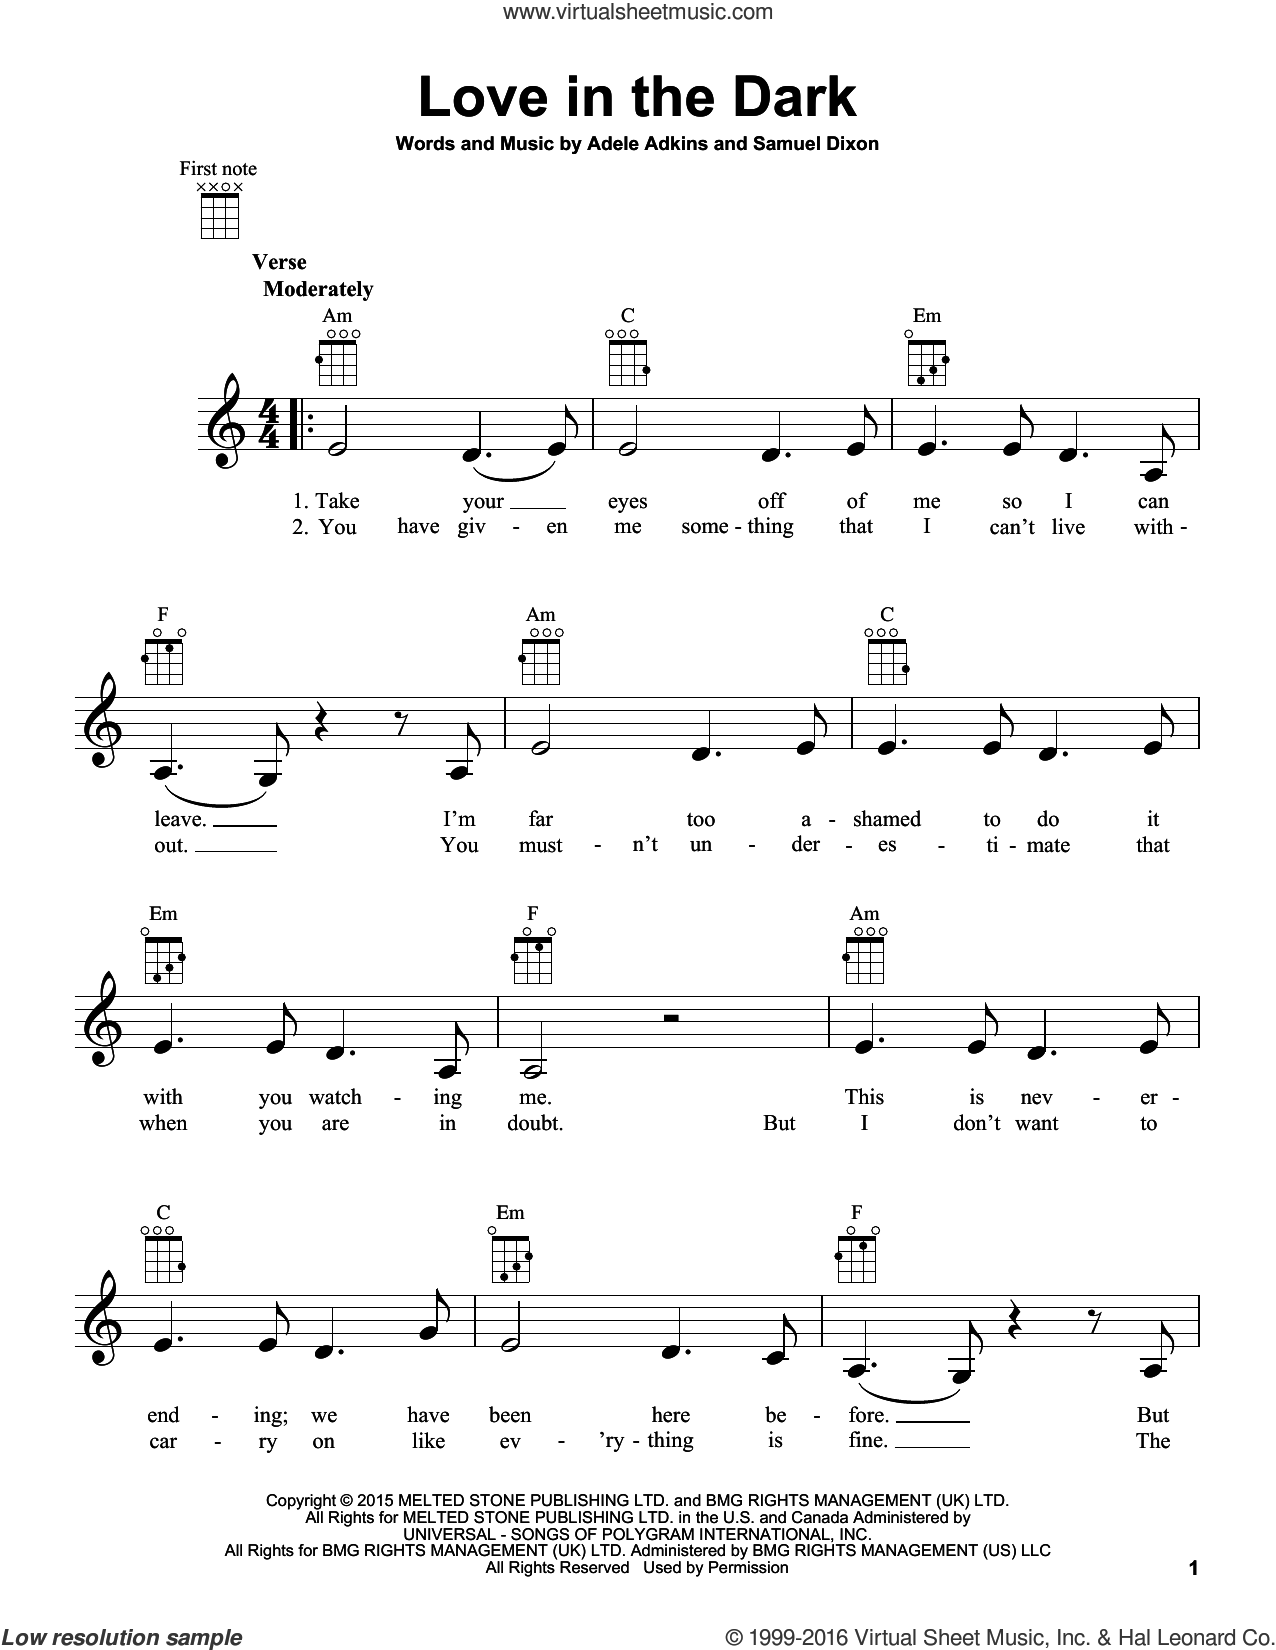 Love In The Dark sheet music for ukulele by Samuel Dixon, Adele and Adele Adkins. Score Image Preview.